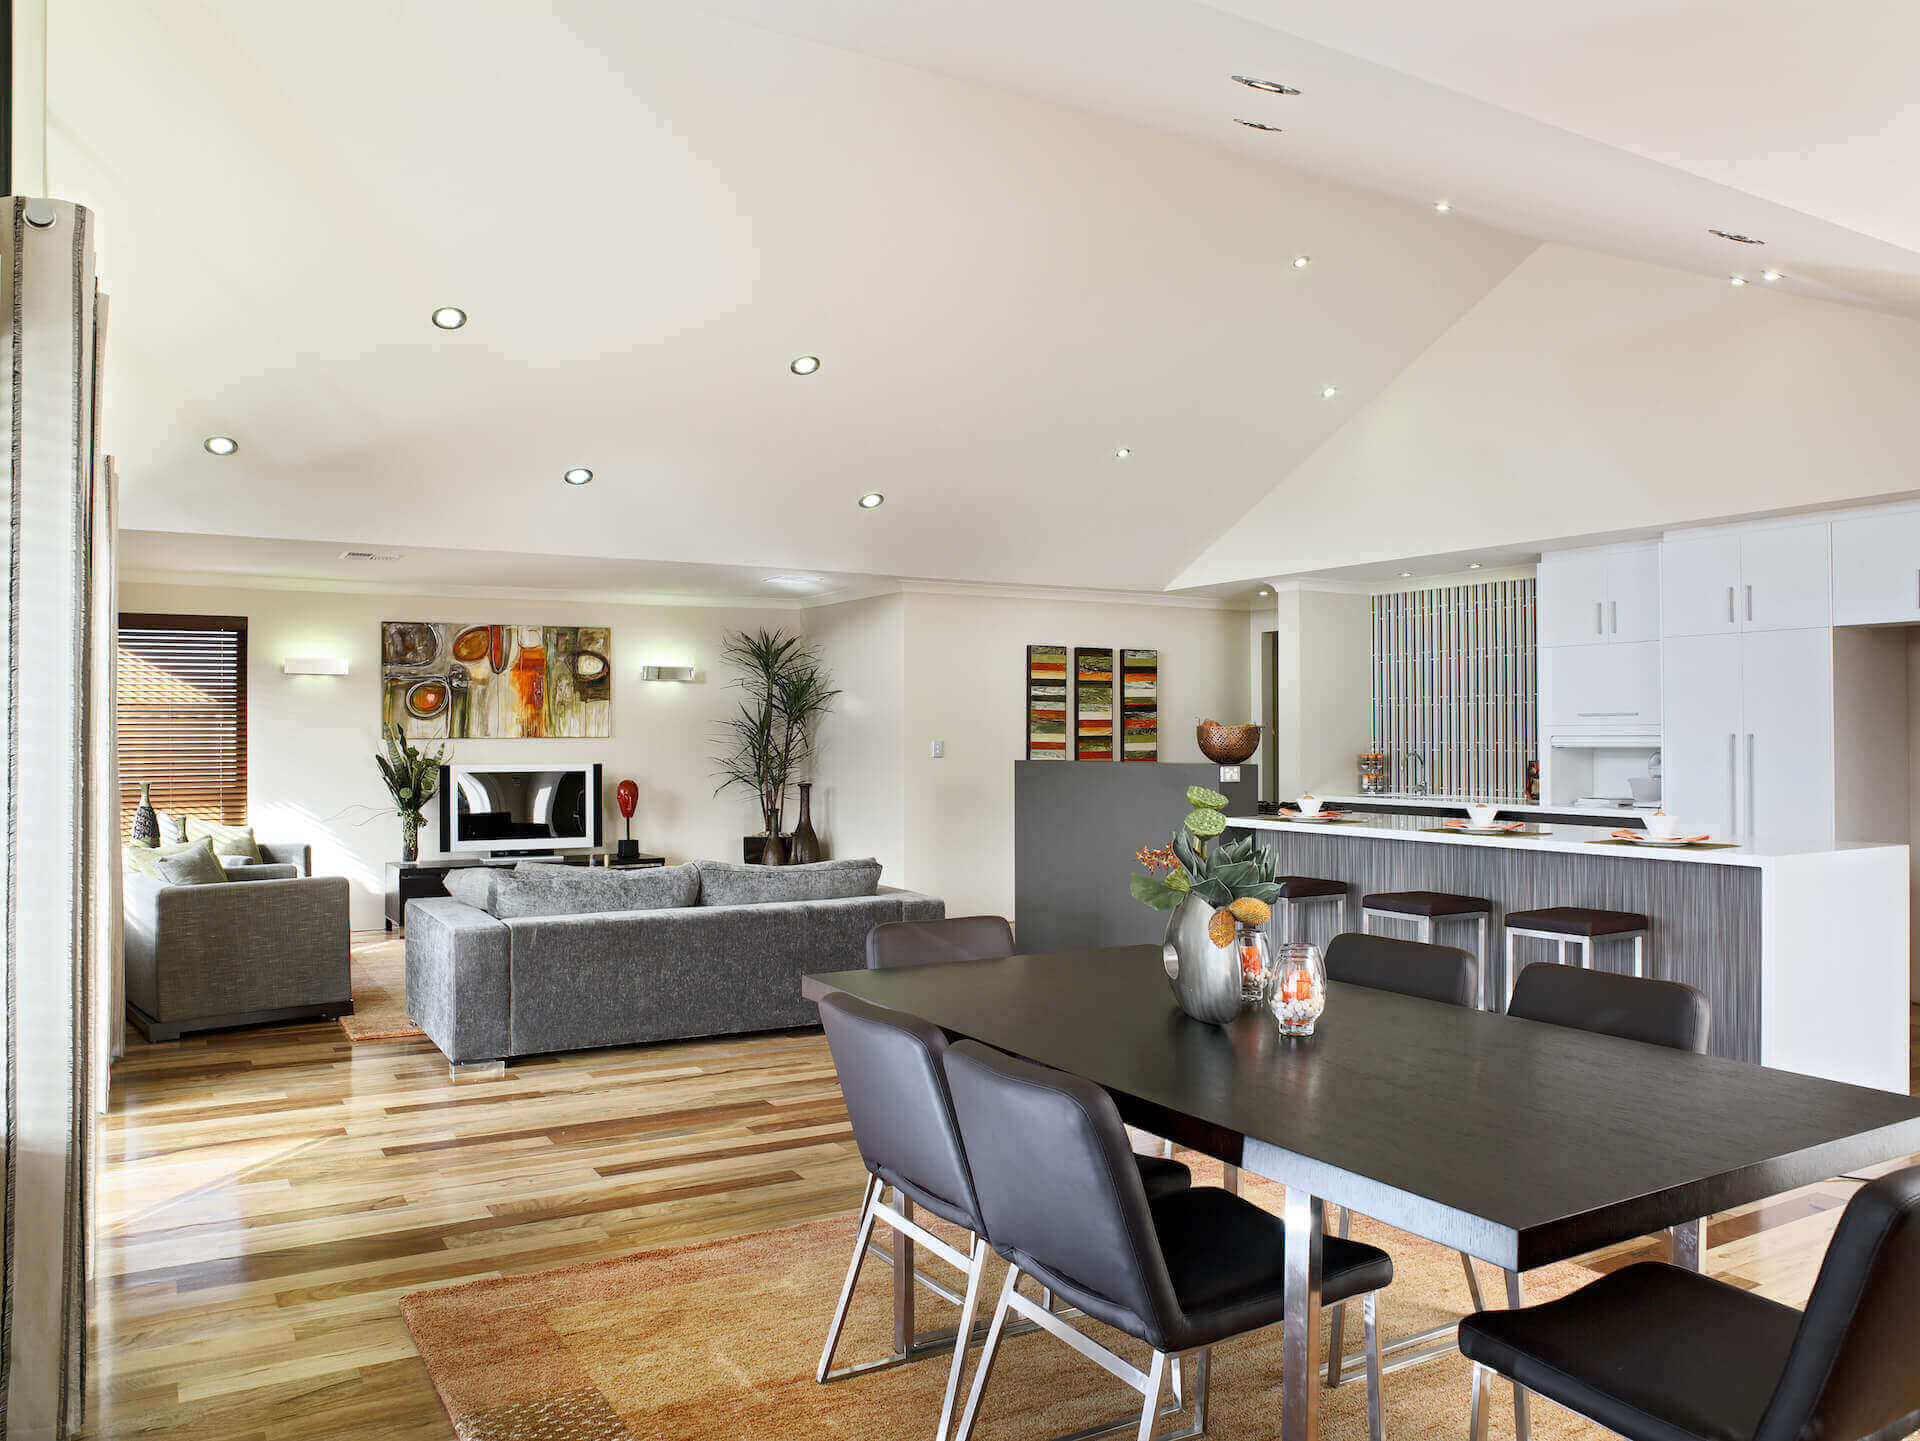 Rural Building Co - The Coastal View - open-plan kitchen